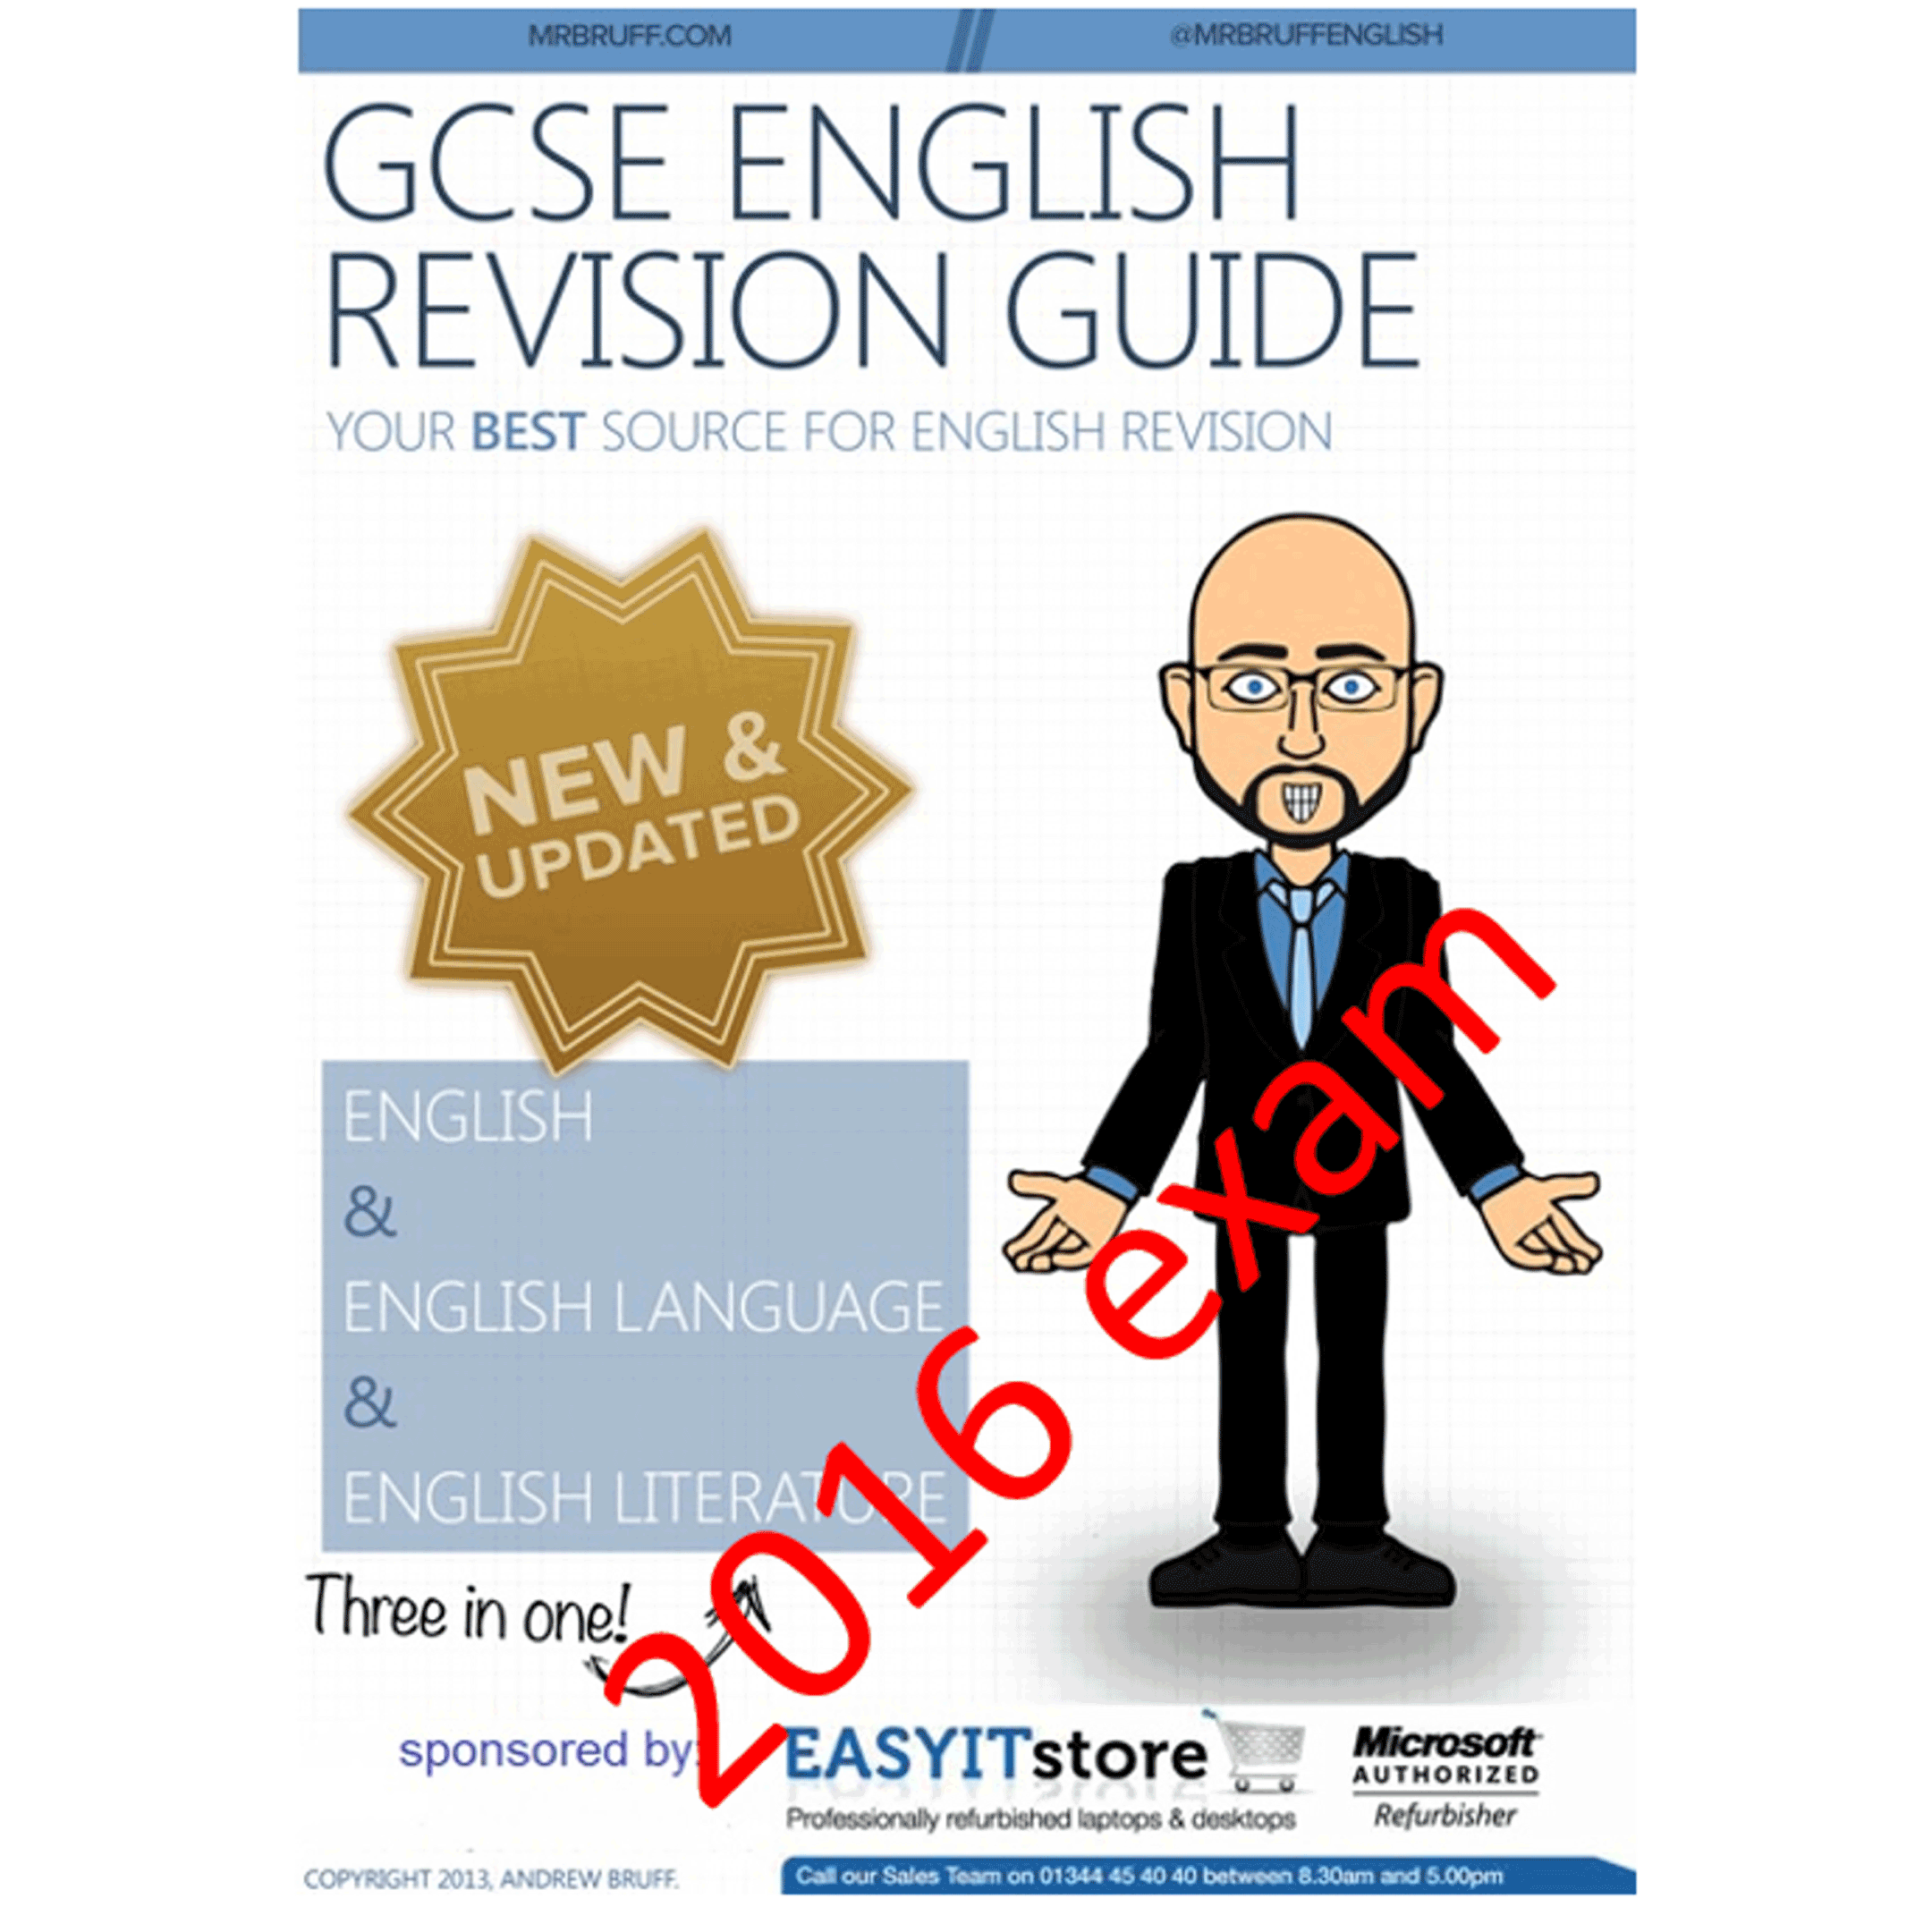 gcse coursework english language The new gcse course in english language will involve both writing and reading you will have to write stories, descriptive pieces, letters and newspaper articles in.